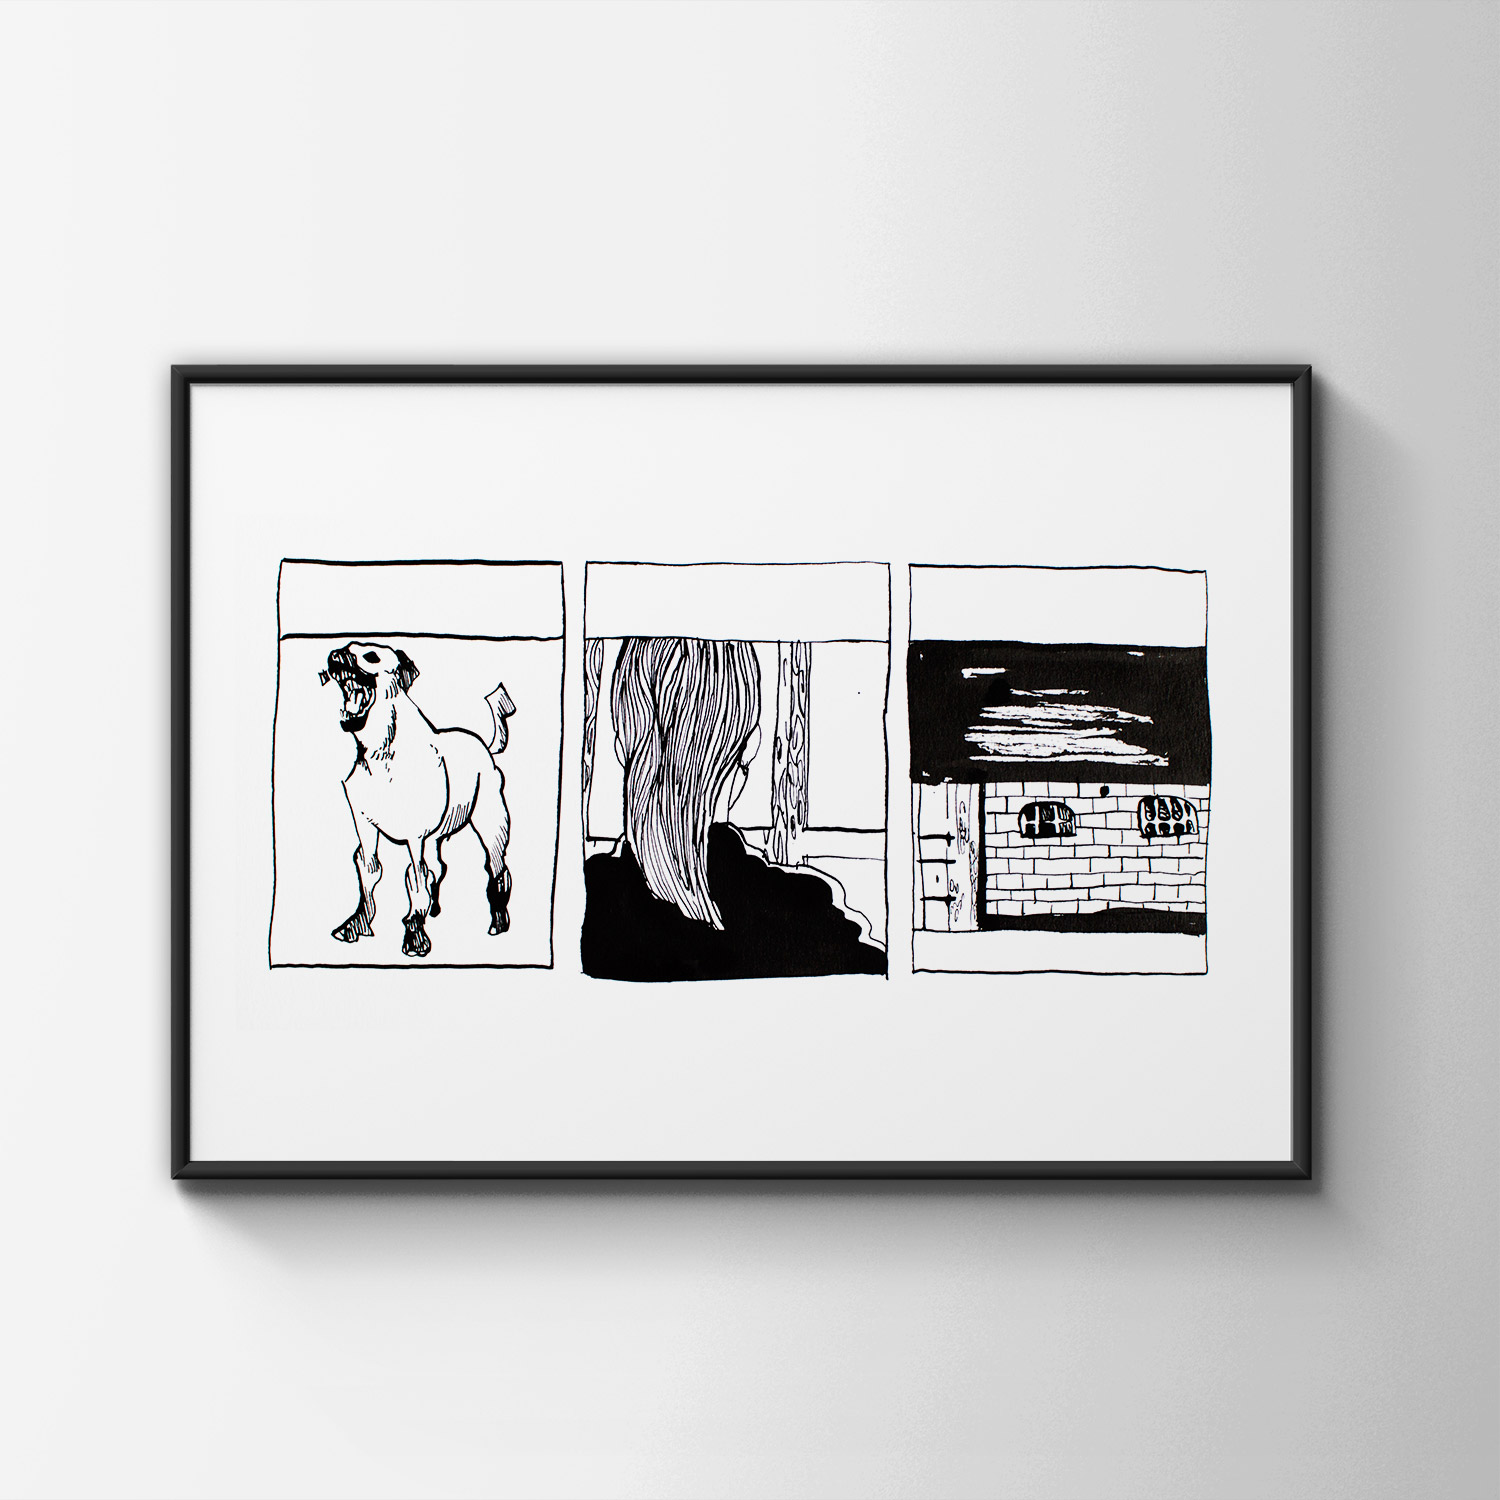 drawings, animal, illustrative, monochrome, portraiture, architecture, cartoons, everyday life, pets, black, white, ink, paper, black-and-white, buildings, dogs, sketch, Buy original high quality art. Paintings, drawings, limited edition prints & posters by talented artists.